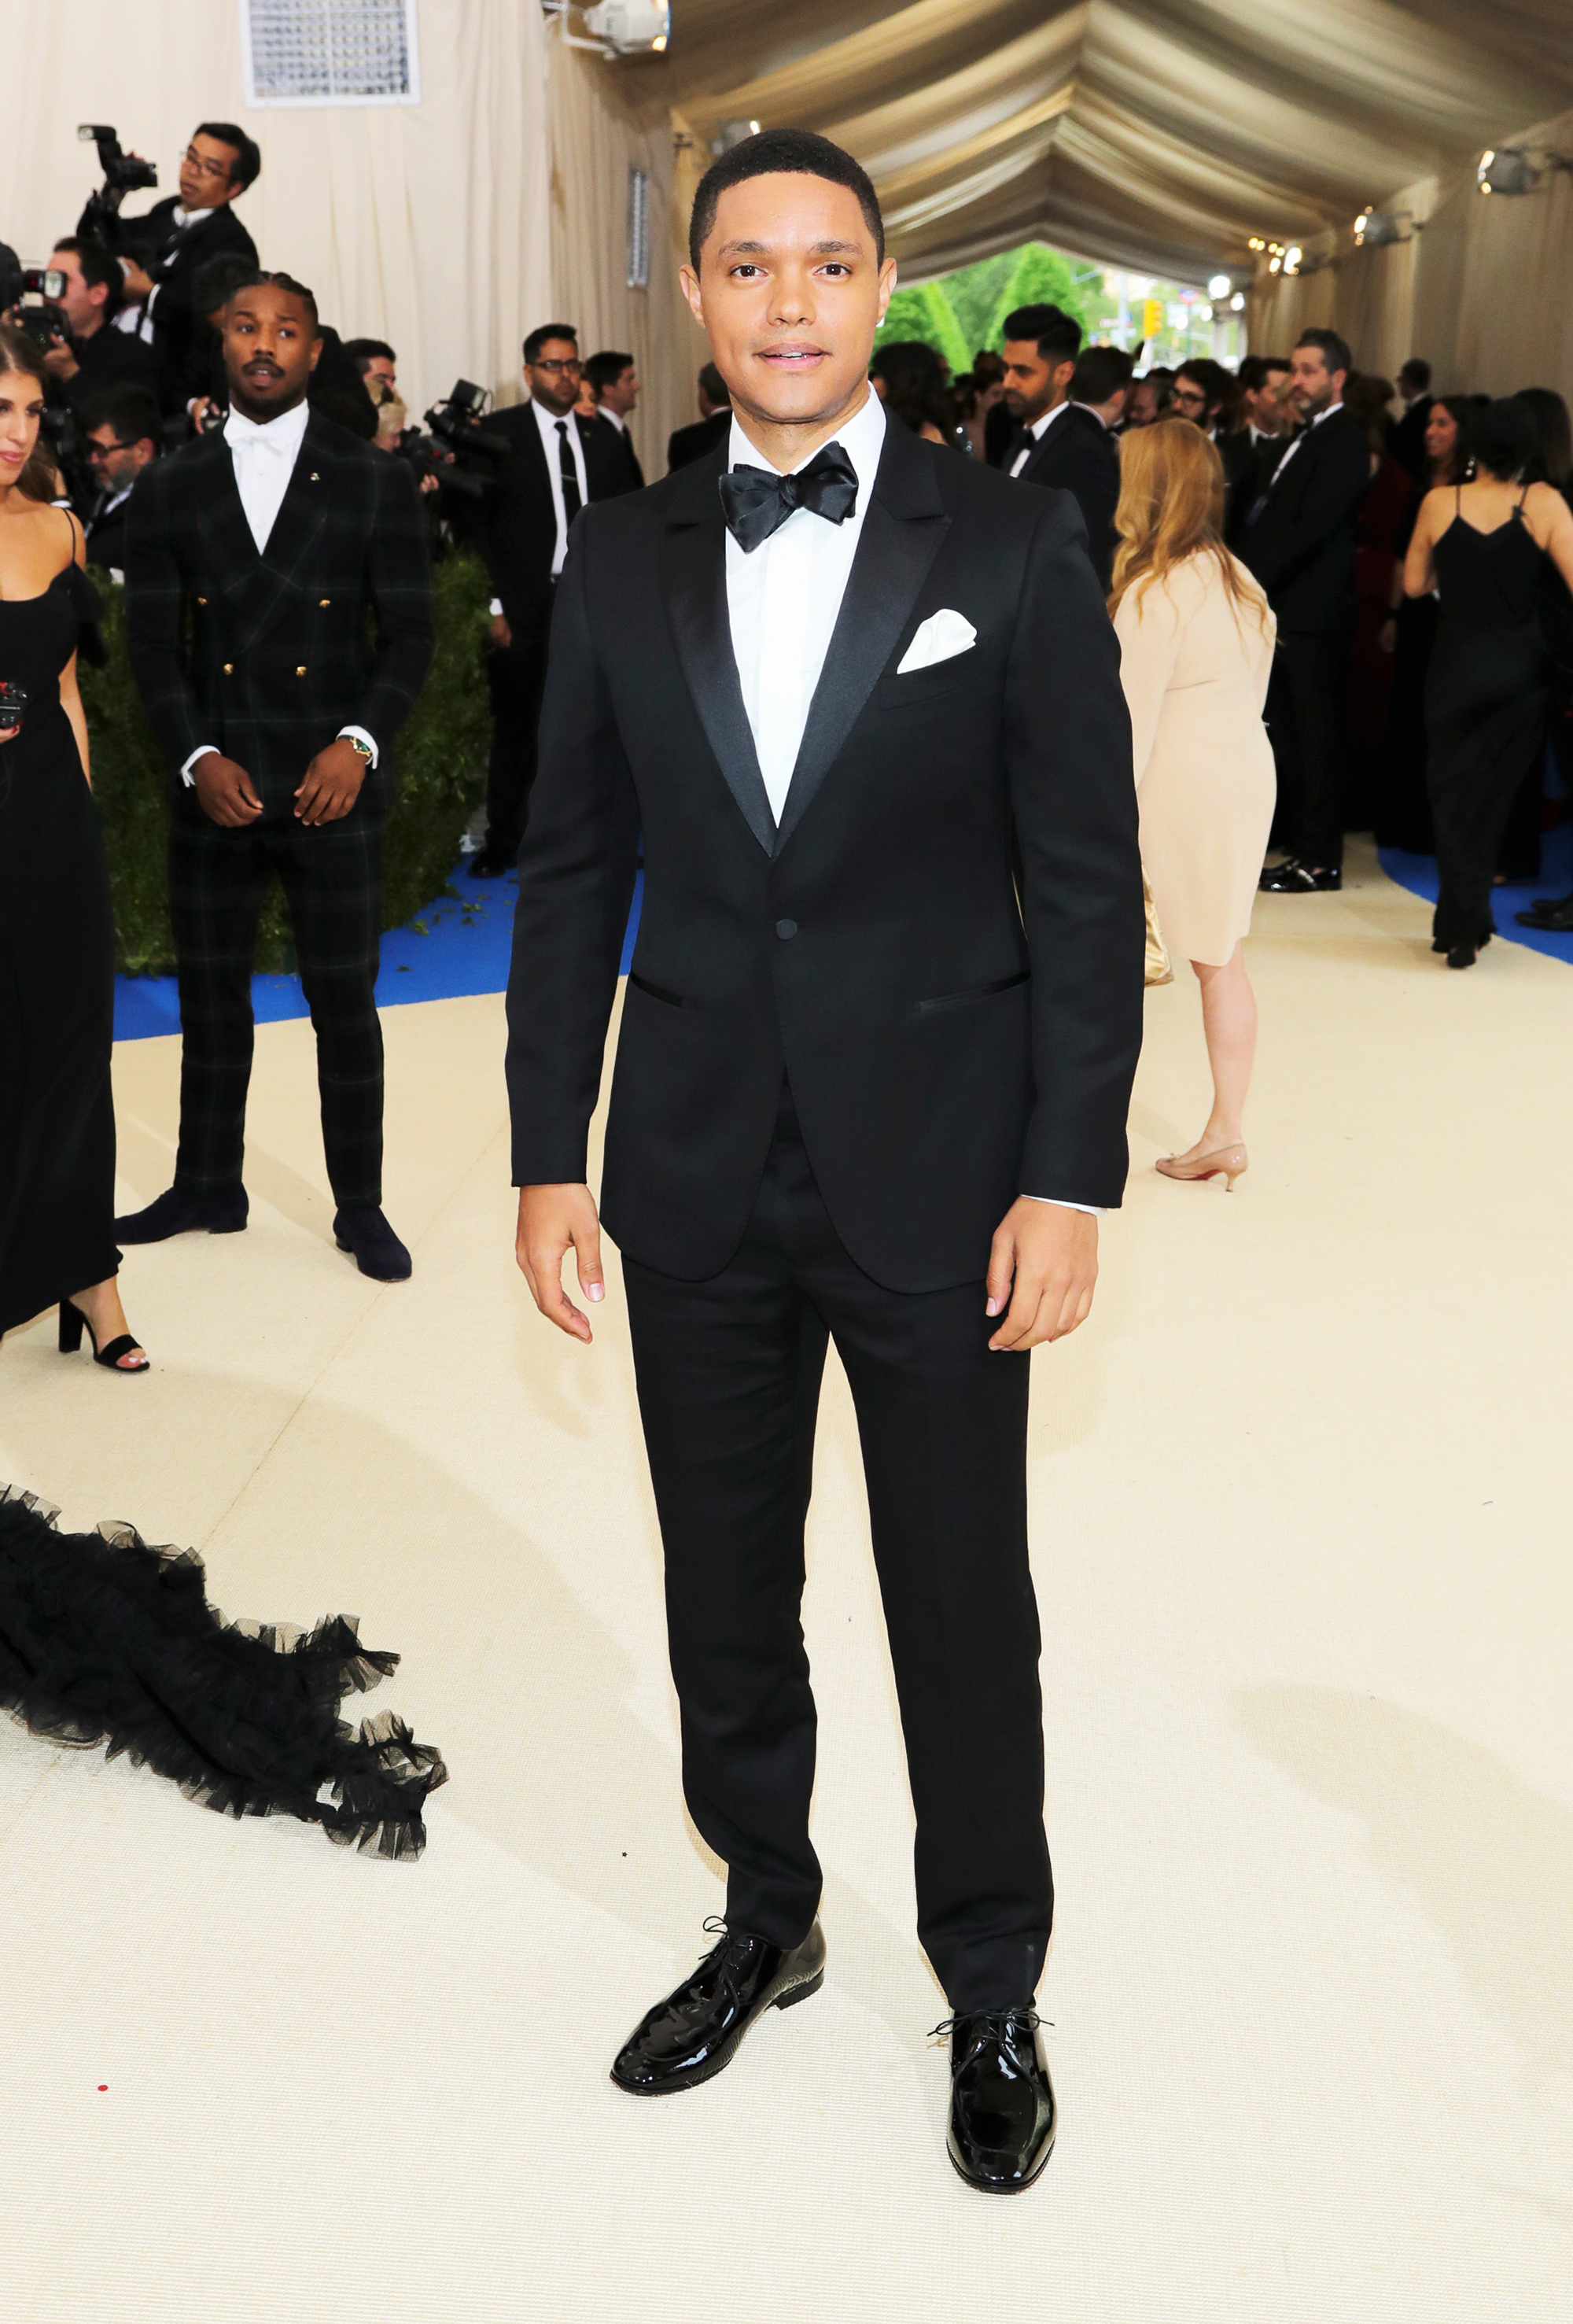 Trevor Noah attends The Metropolitan Museum of Art's Costume Institute benefit gala celebrating the opening of the Rei Kawakubo/Comme des Garçons: Art of the In-Between exhibition in New York City, on May 1, 2017.